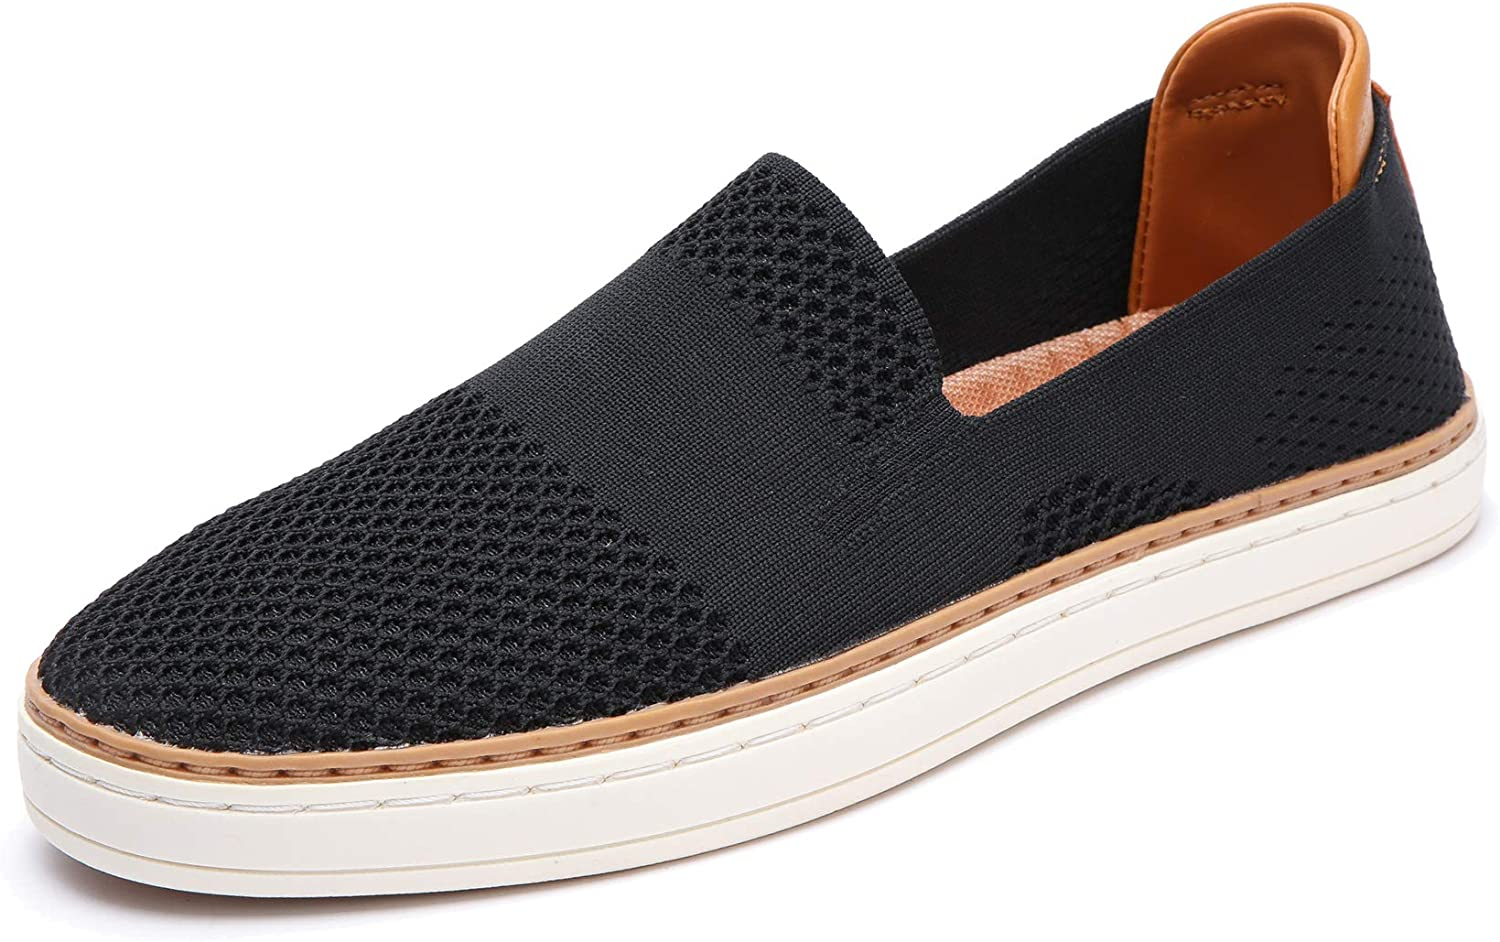 TRULAND Women's Casual Shoes Slip On